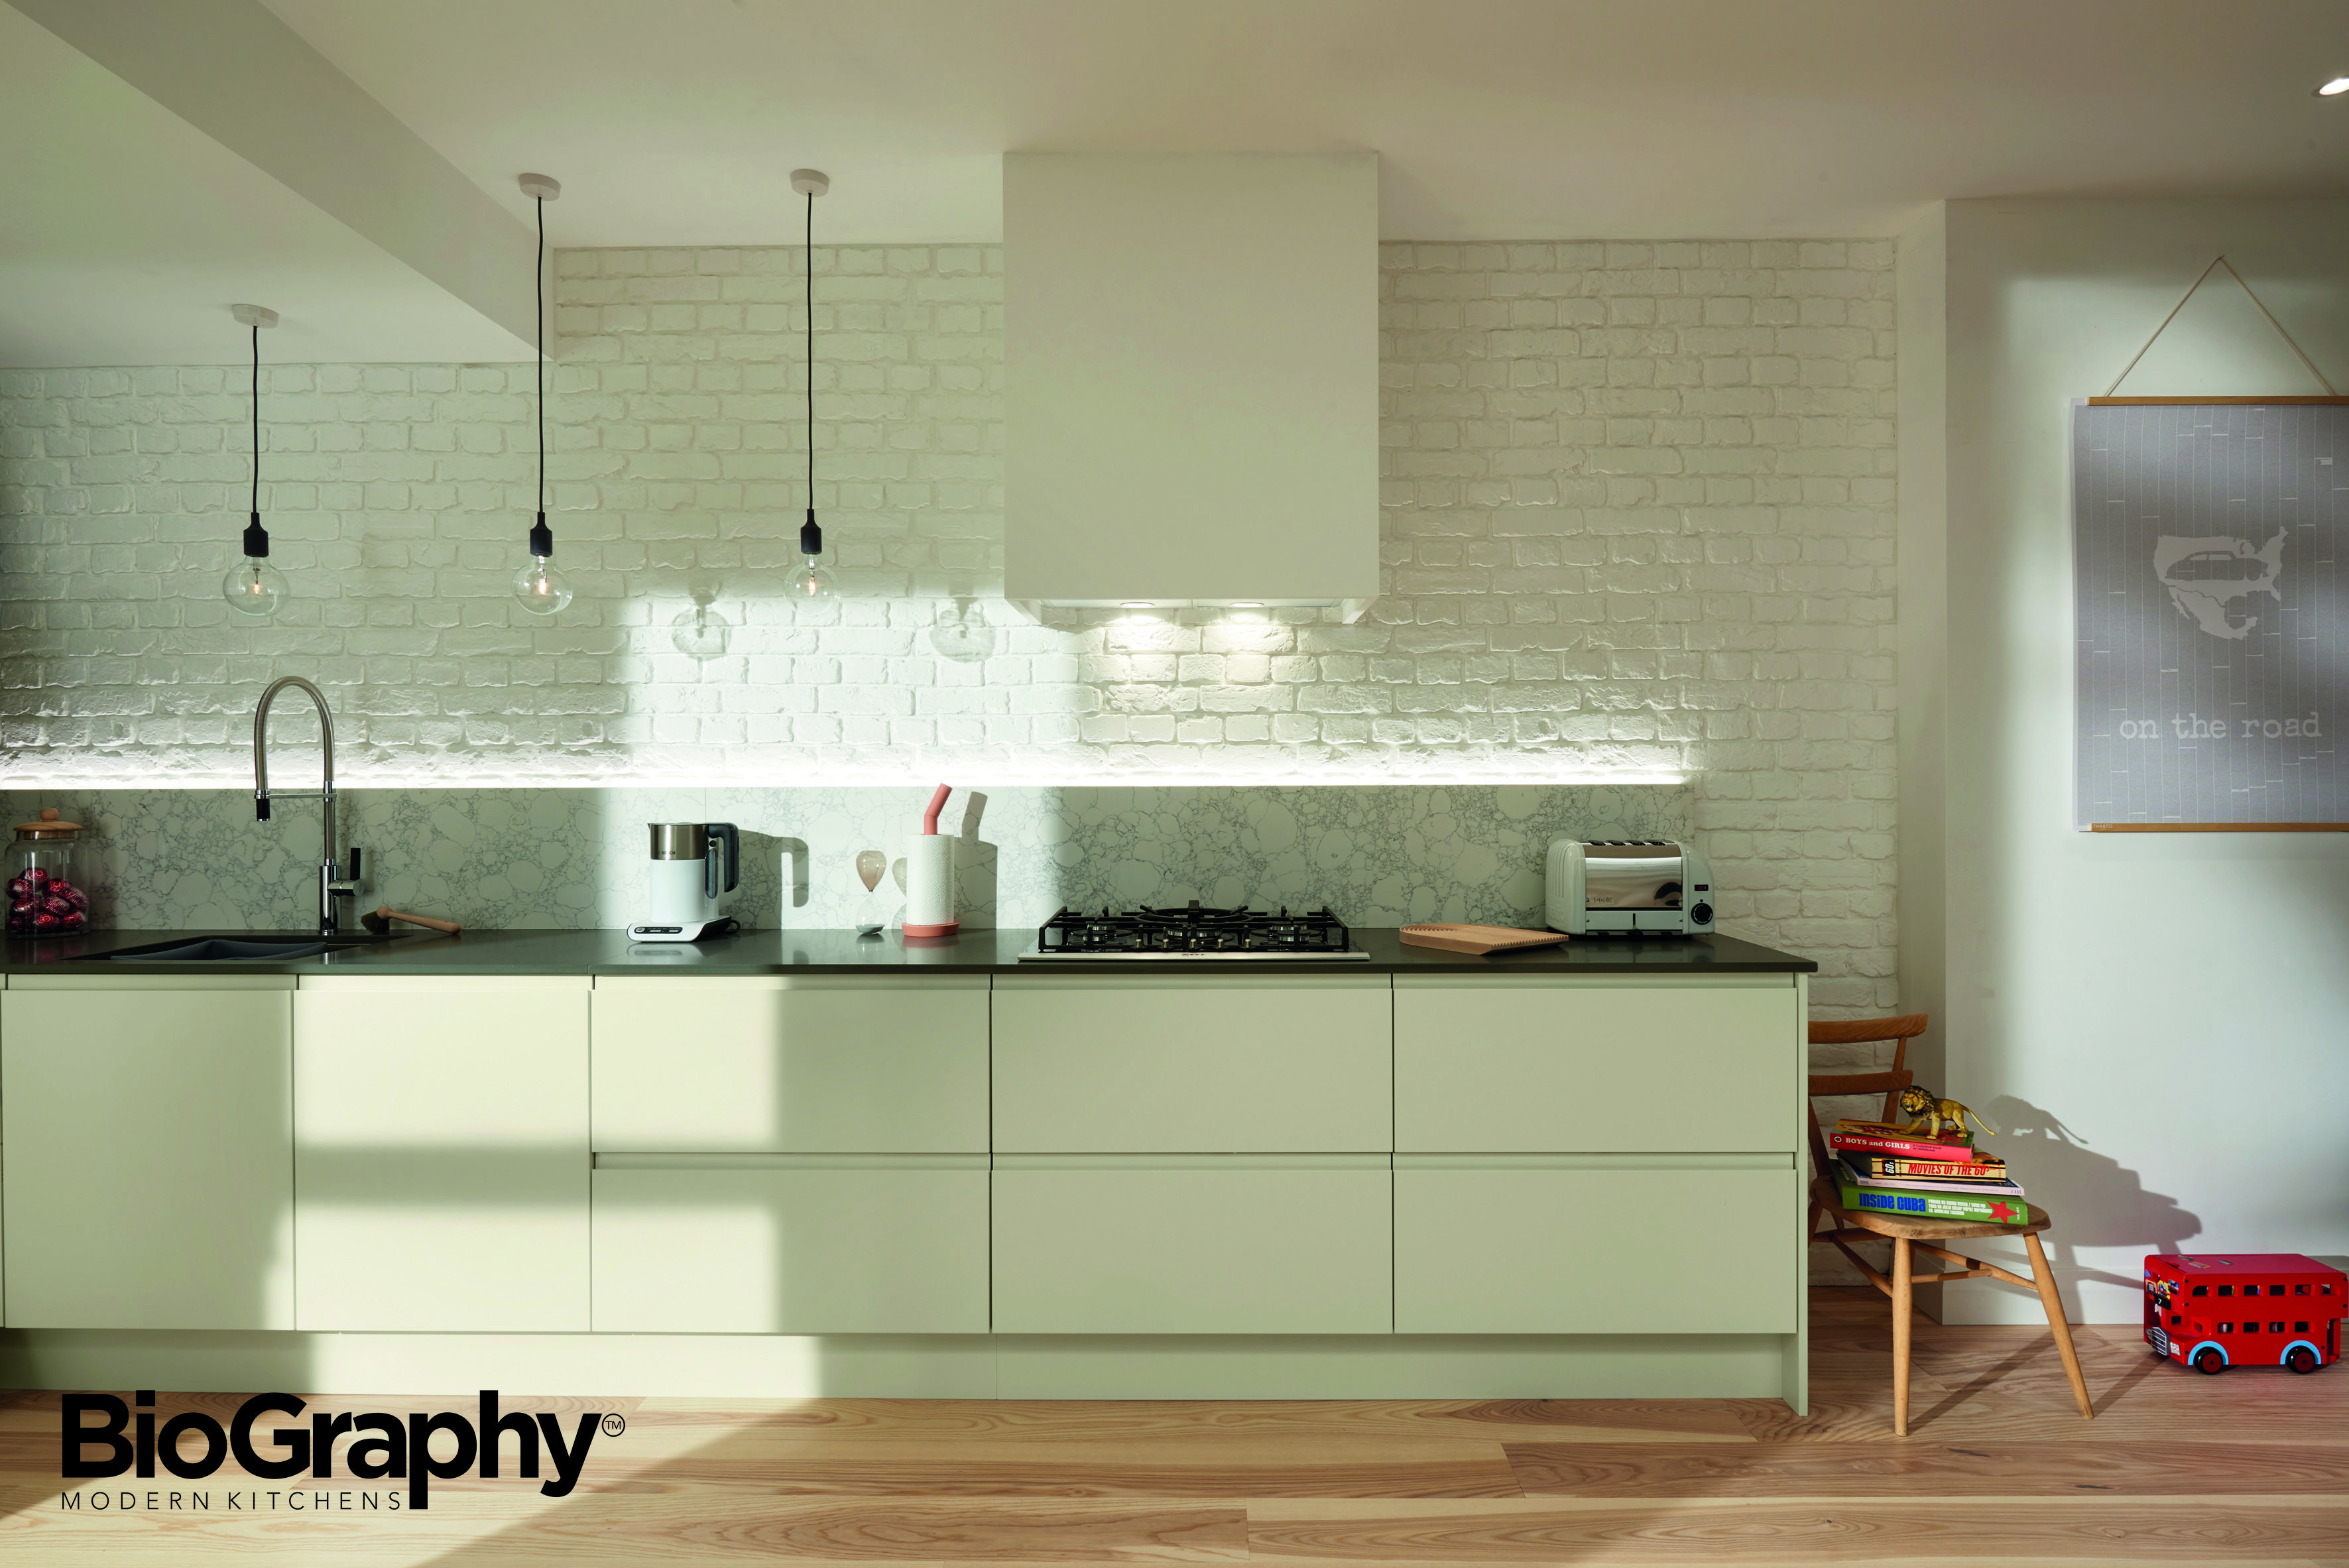 BioGraphy Modern Kitchen Design Style  Space Efficient Relaxed - Fitted kitchen design ideas